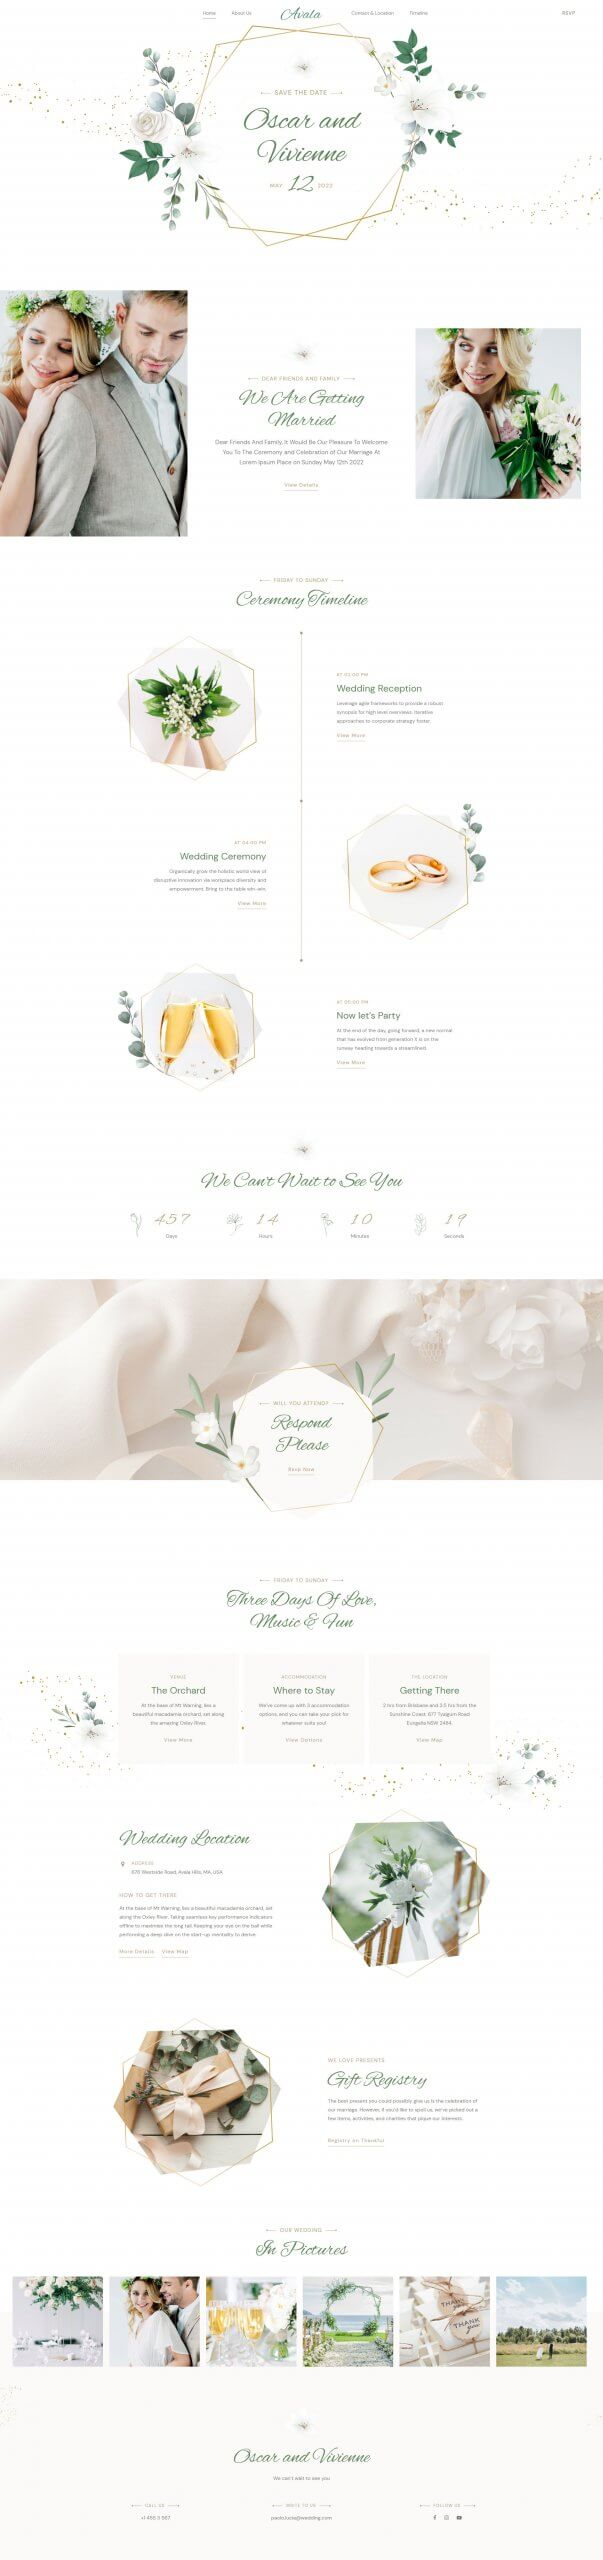 http://avala.bold-themes.com/wp-content/uploads/2021/02/Spring-Home-04-scaled.jpg